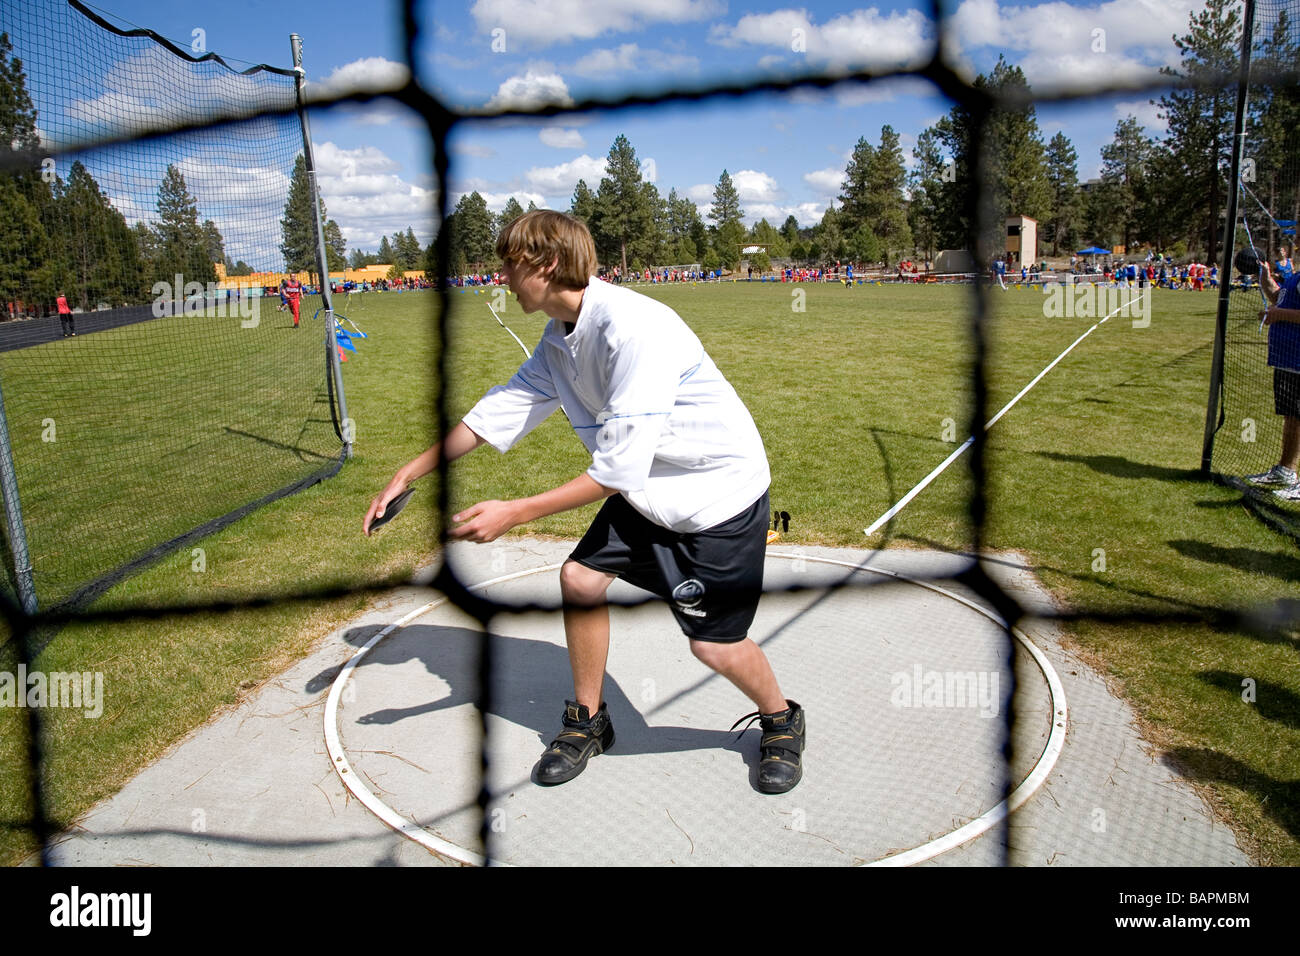 A middle school boys discus throw during a school track and field meet on the field of a local junior high school, - Stock Image